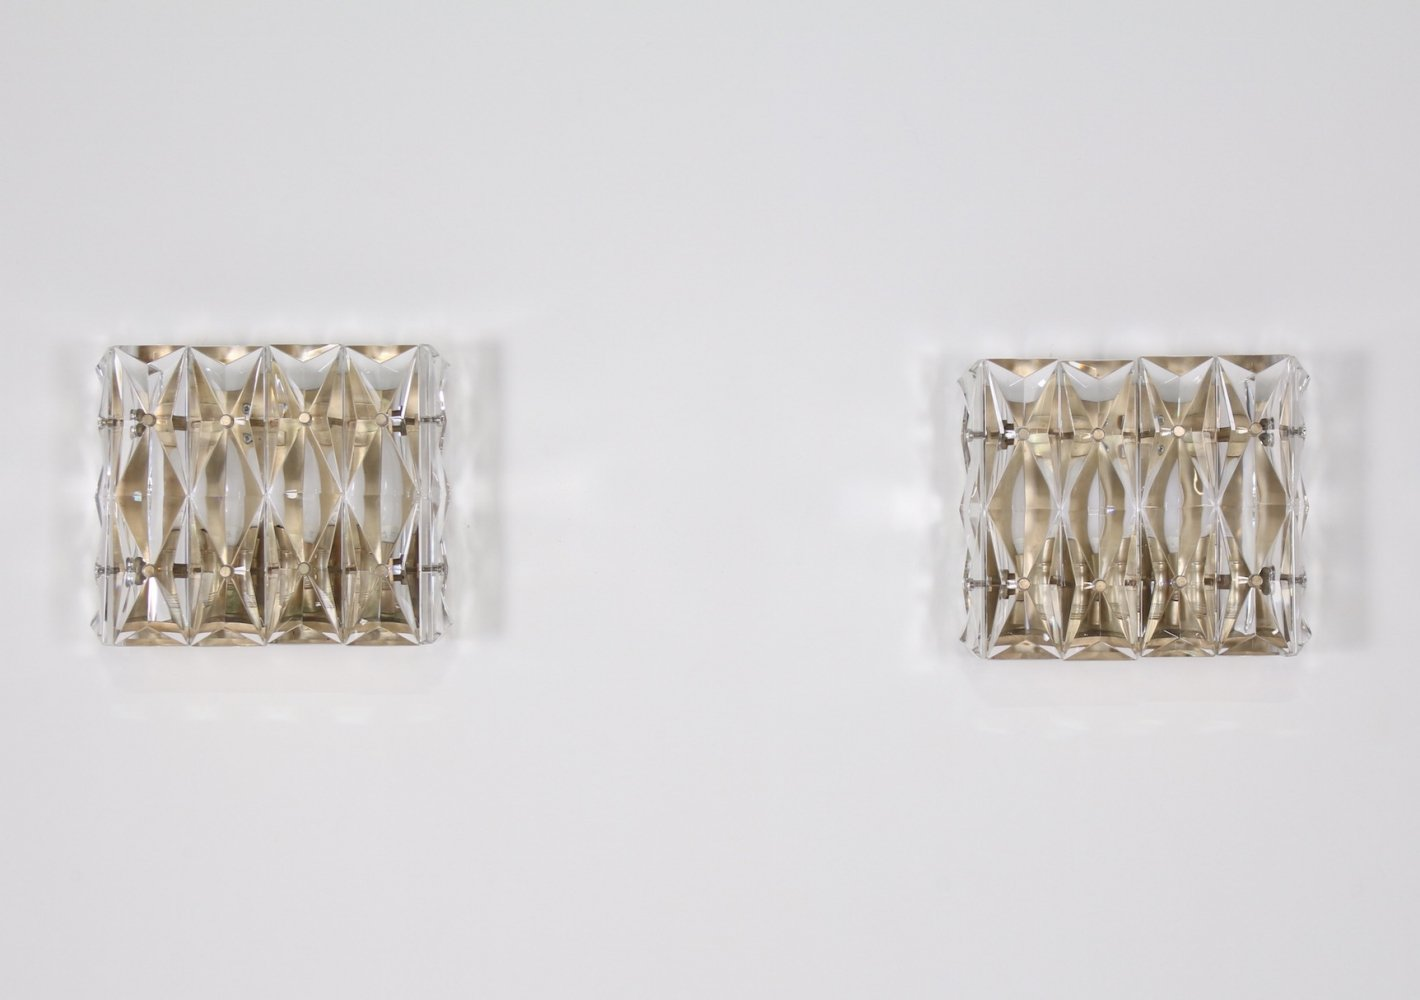 Pair of gilded metal & molded crystal wall lights by Kinkeldey, 1970